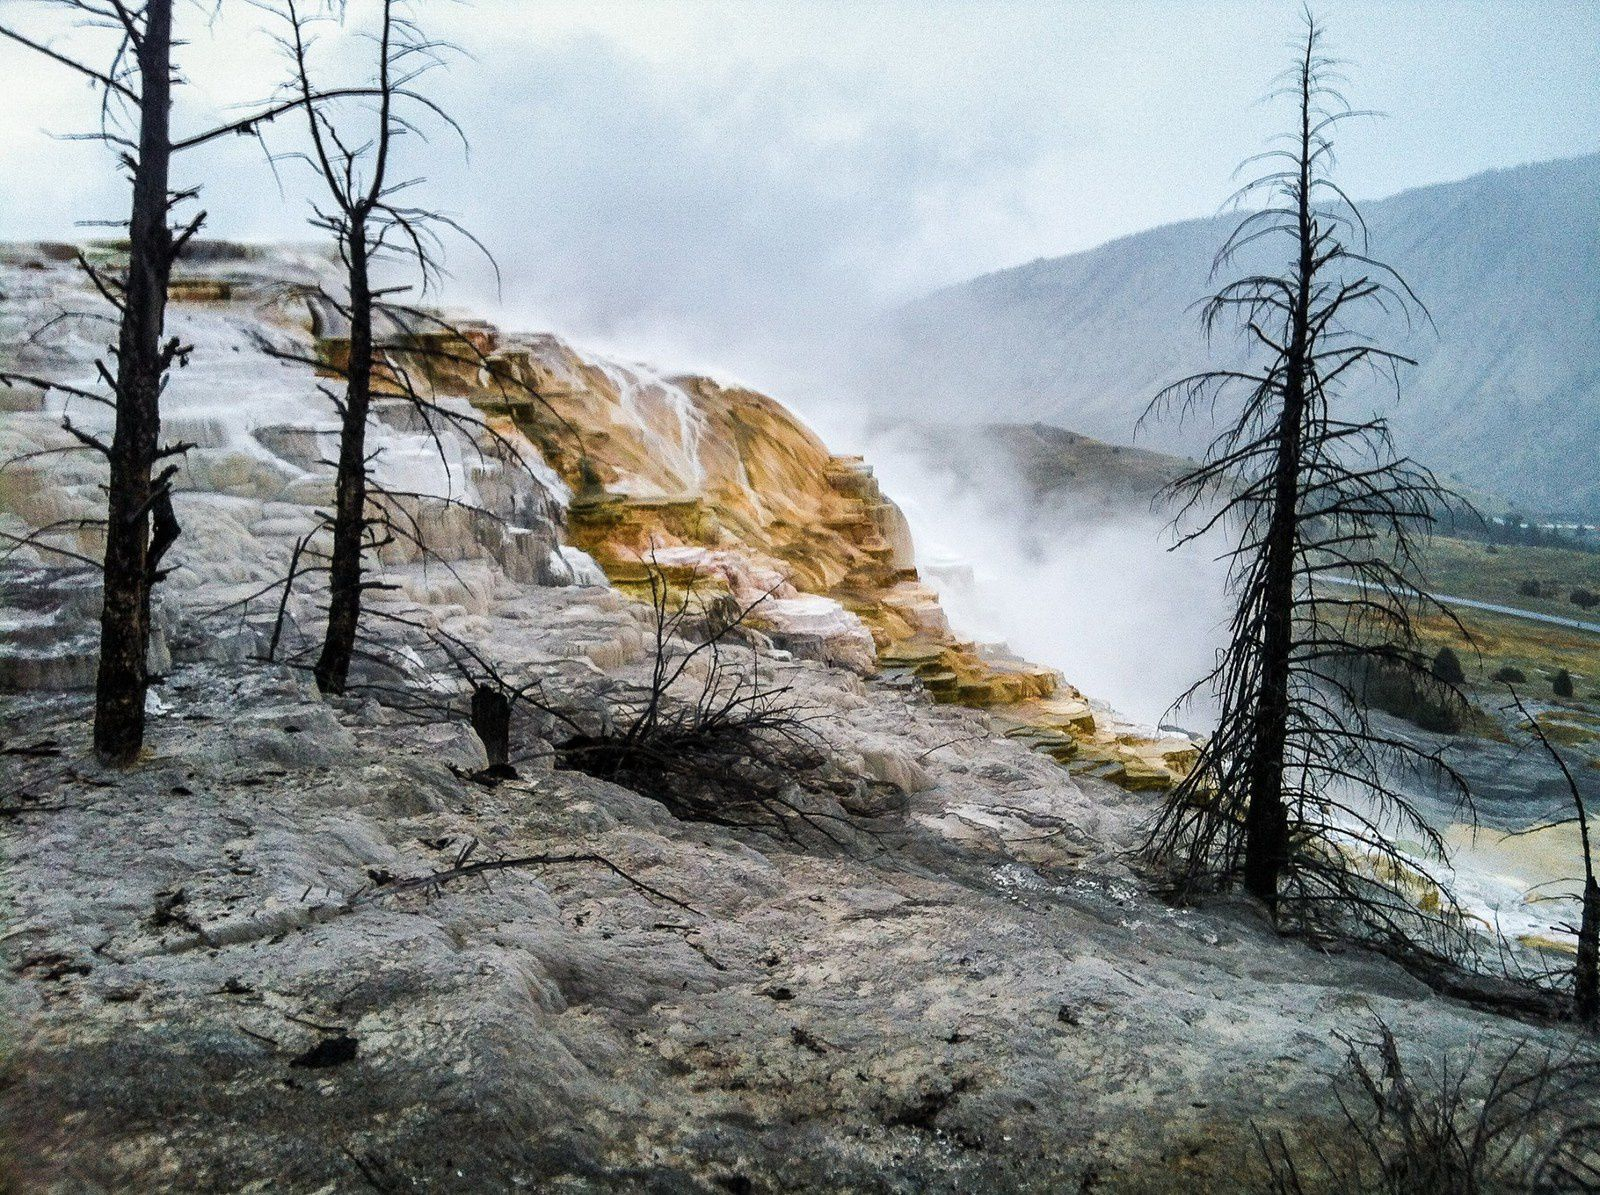 To Canary springs, thermophilic remain colorful - photo Yellowstone National Park in 2014